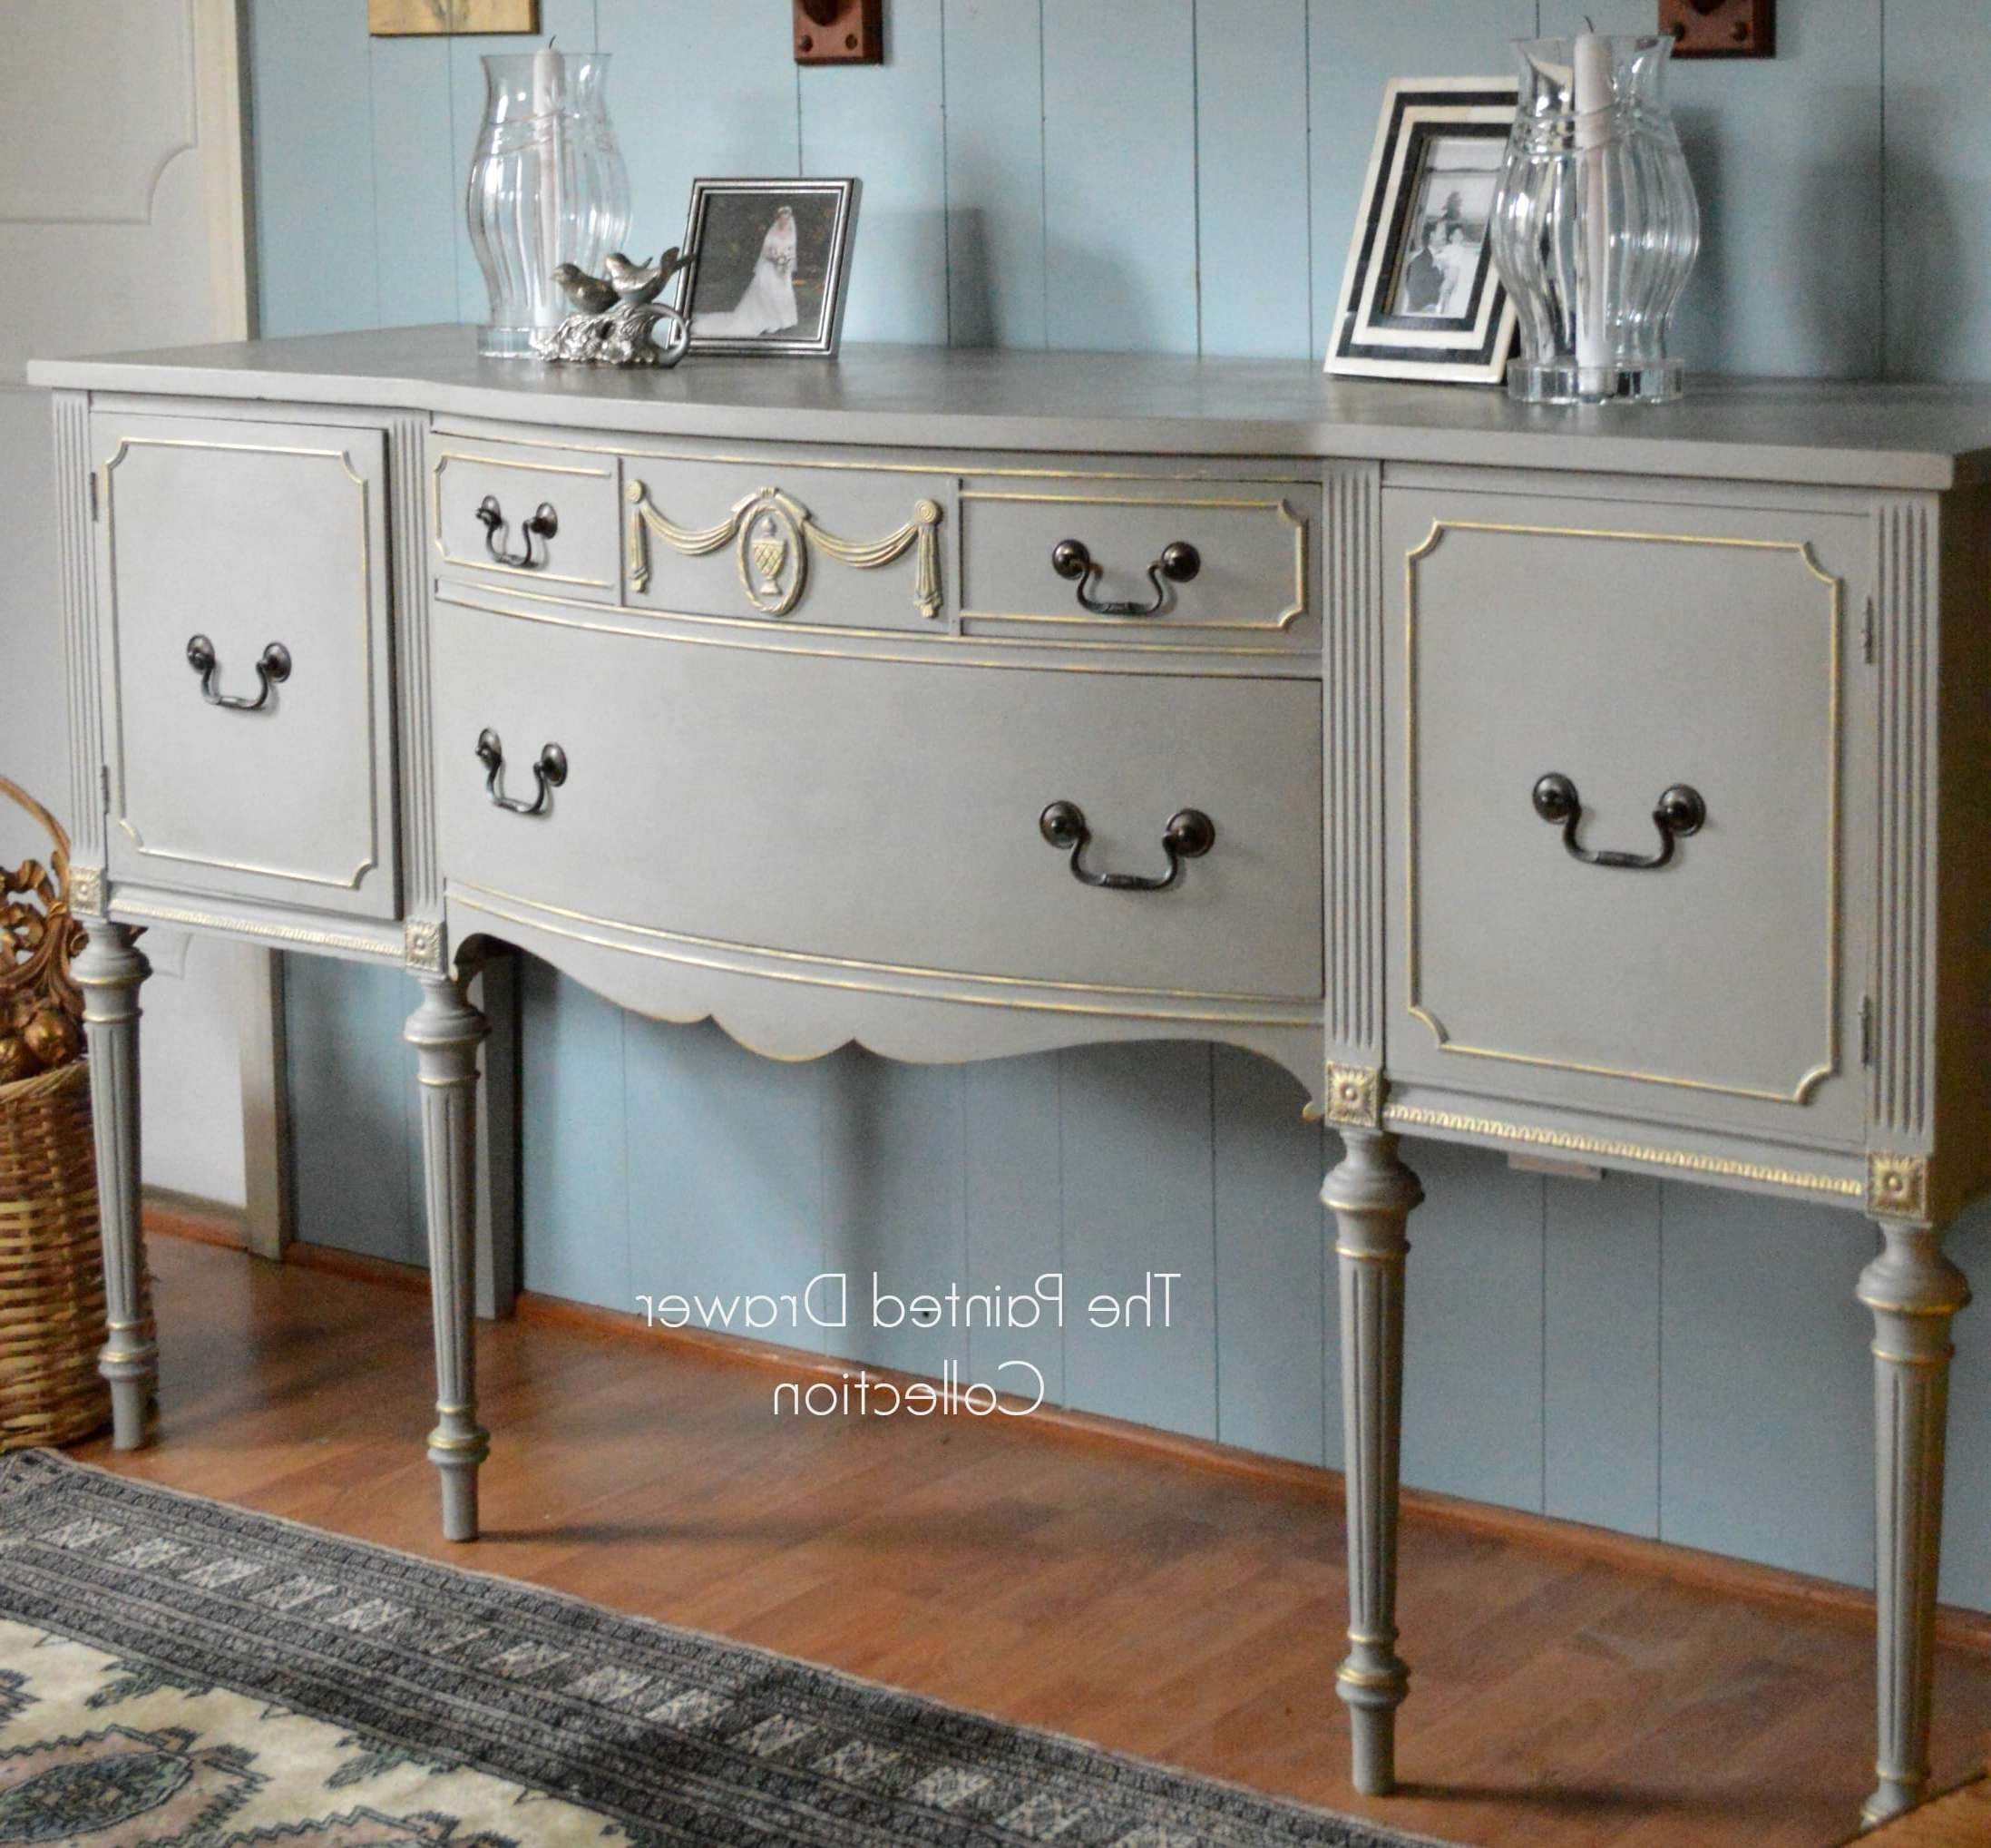 French Linen And Gold Sideboard Transformation – Before And After – Throughout Annie Sloan Painted Sideboards (View 6 of 20)